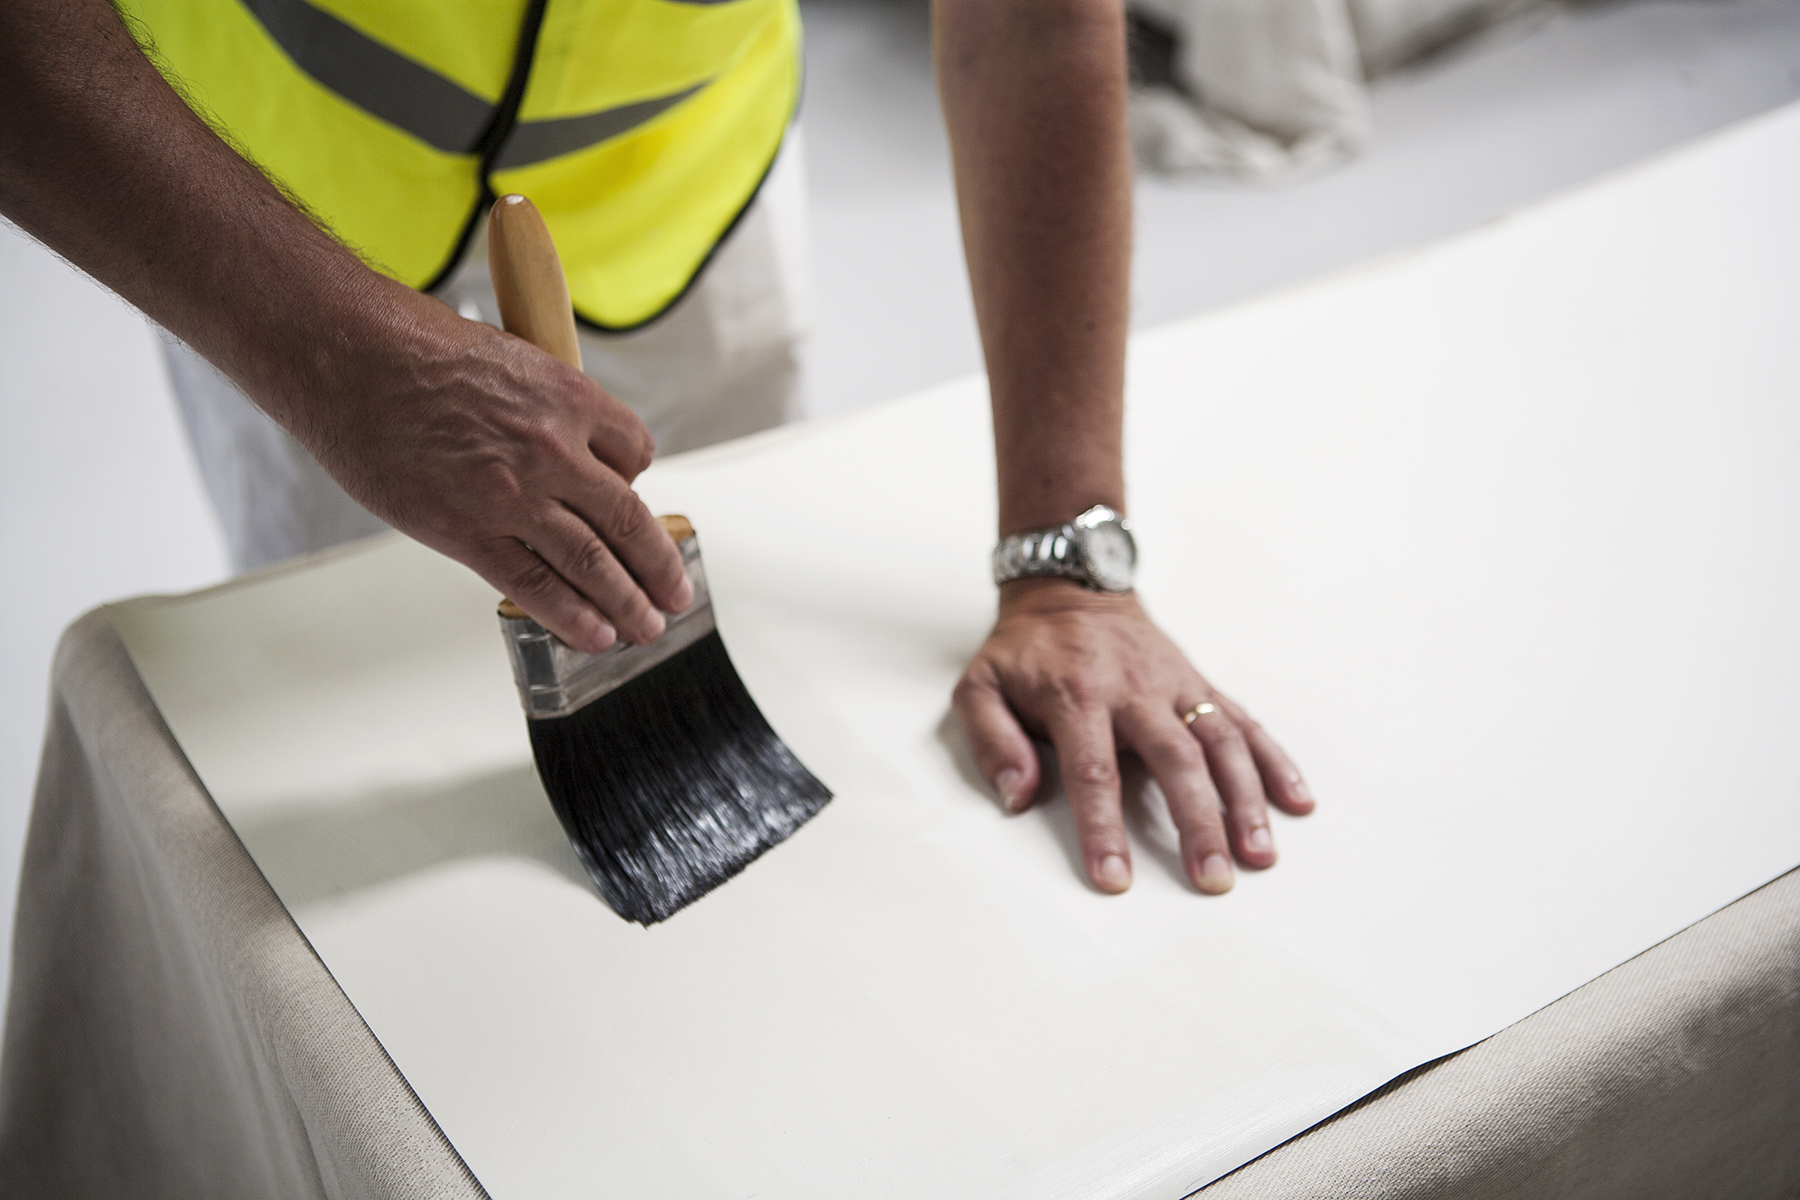 Editorial photography for business by Stephen Cole, commercial photographer based in Rochester. In this image, a painter and decorator applies paste to a length of wallpaper.